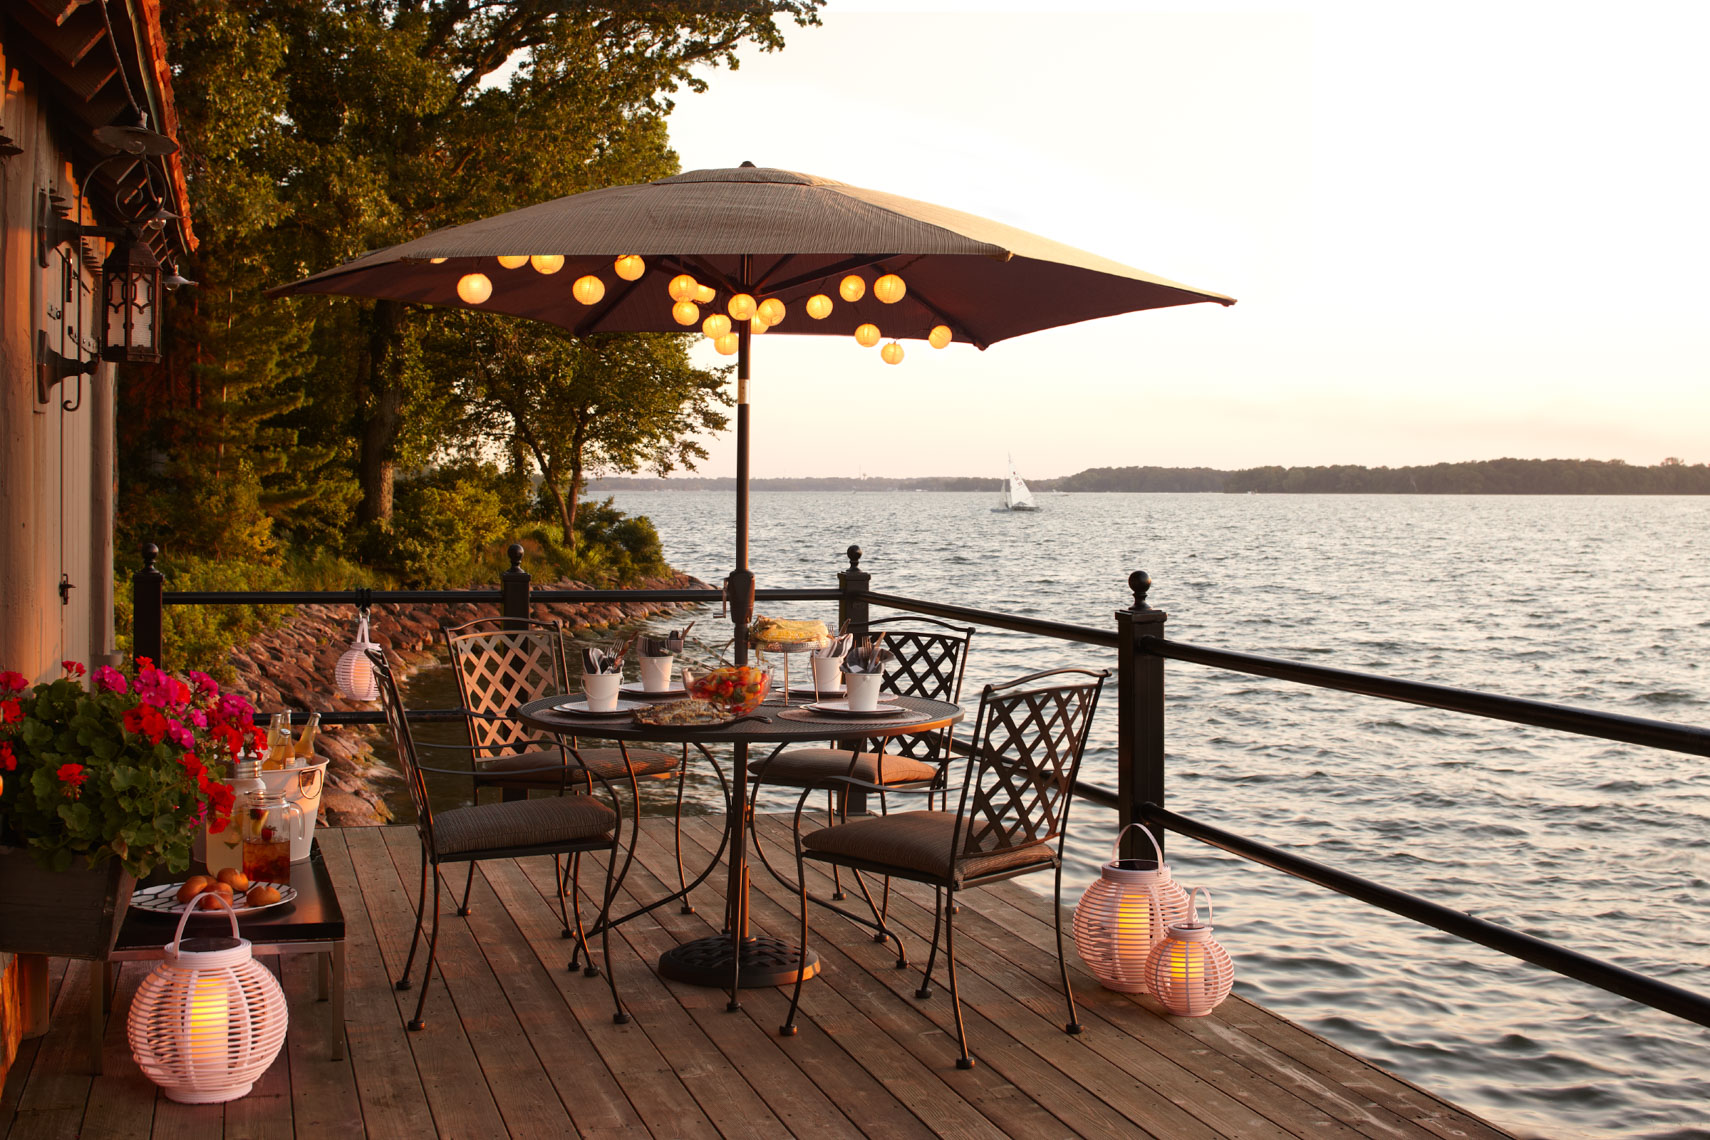 Outdoor seating collection on dock with brown umbrella on a lake San Francisco lifestyle photographer